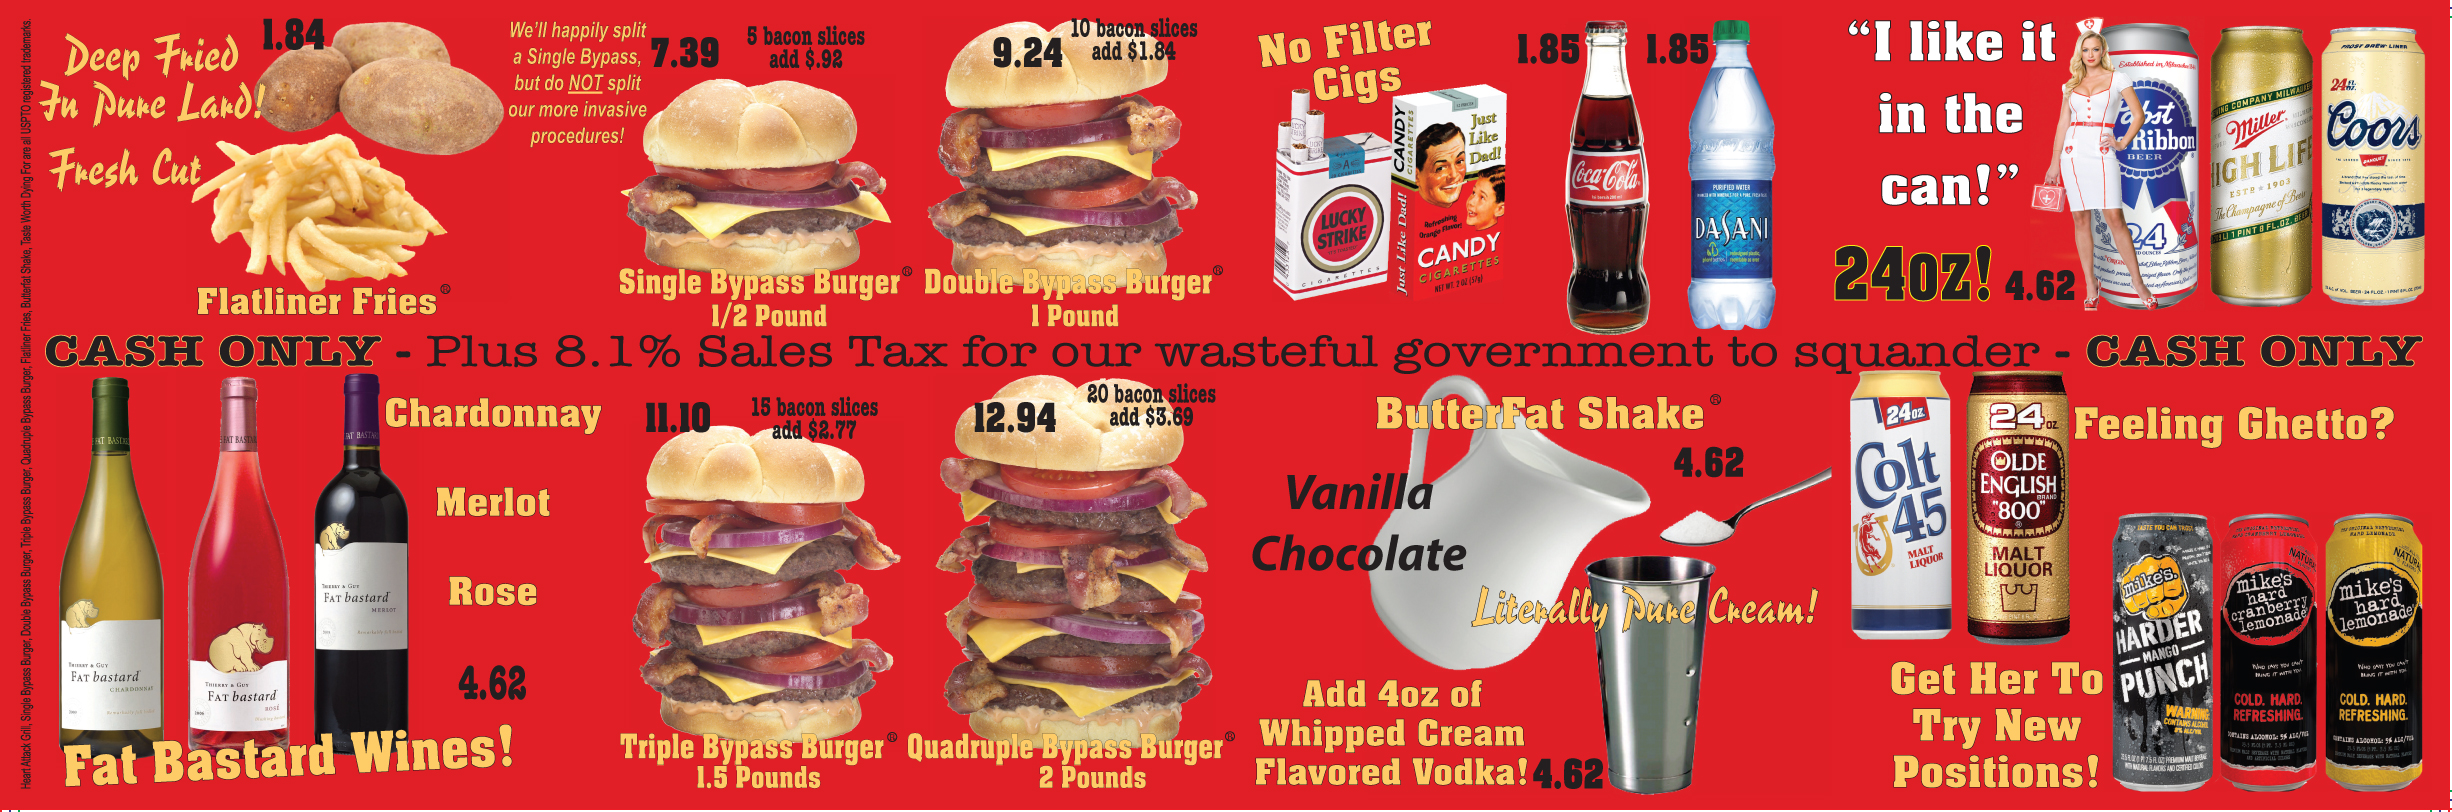 heart attack grill confessions of a former fat girl